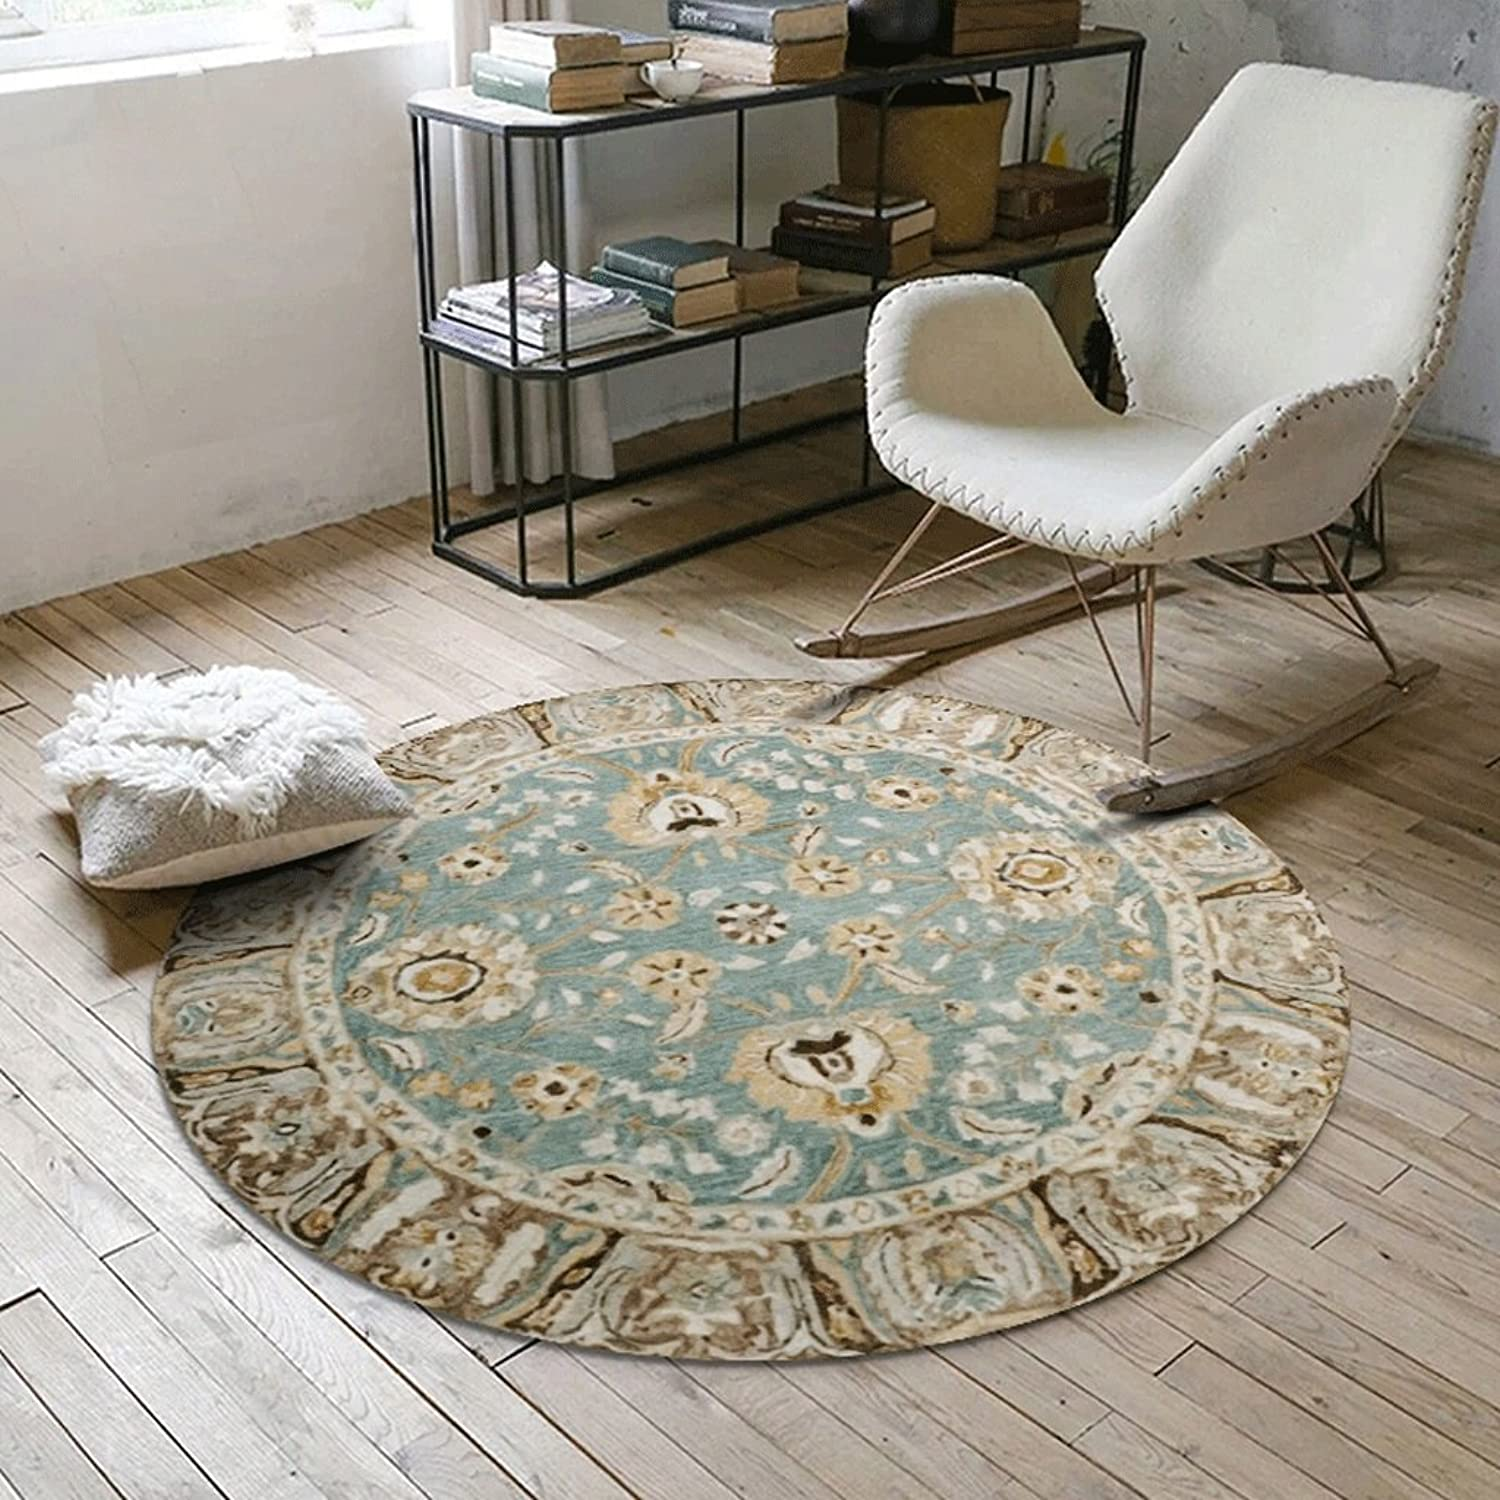 Pattern Round Carpet Bedroom Room Round Carpet Home Computer Chair Floor Mat (Size   80cm(31inch))